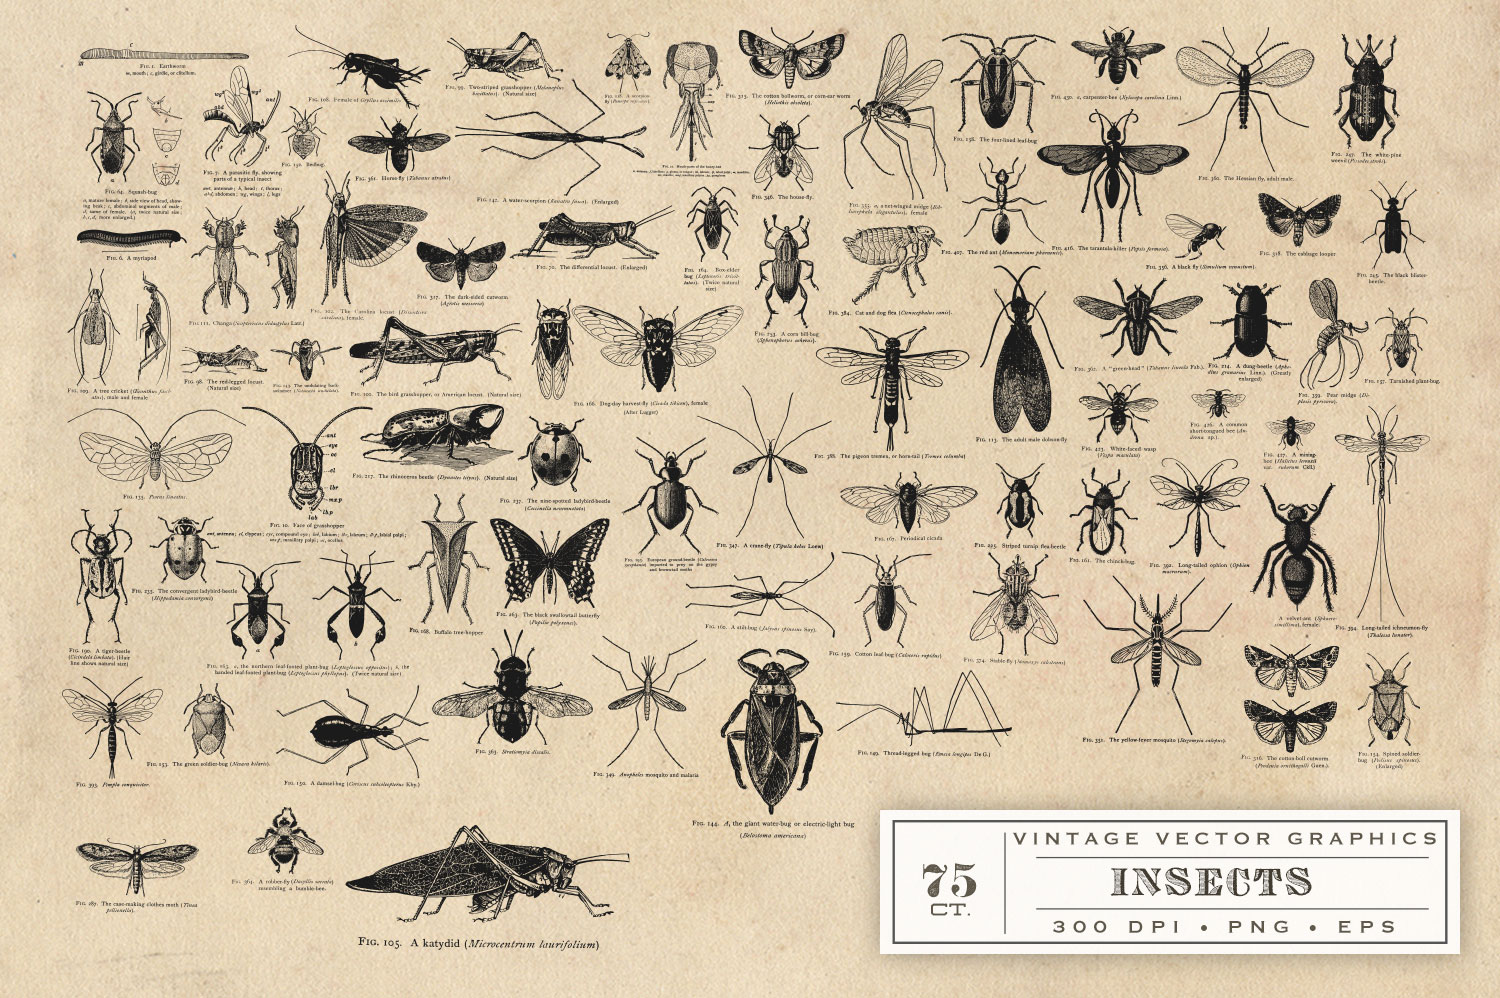 Insect Vector Graphics